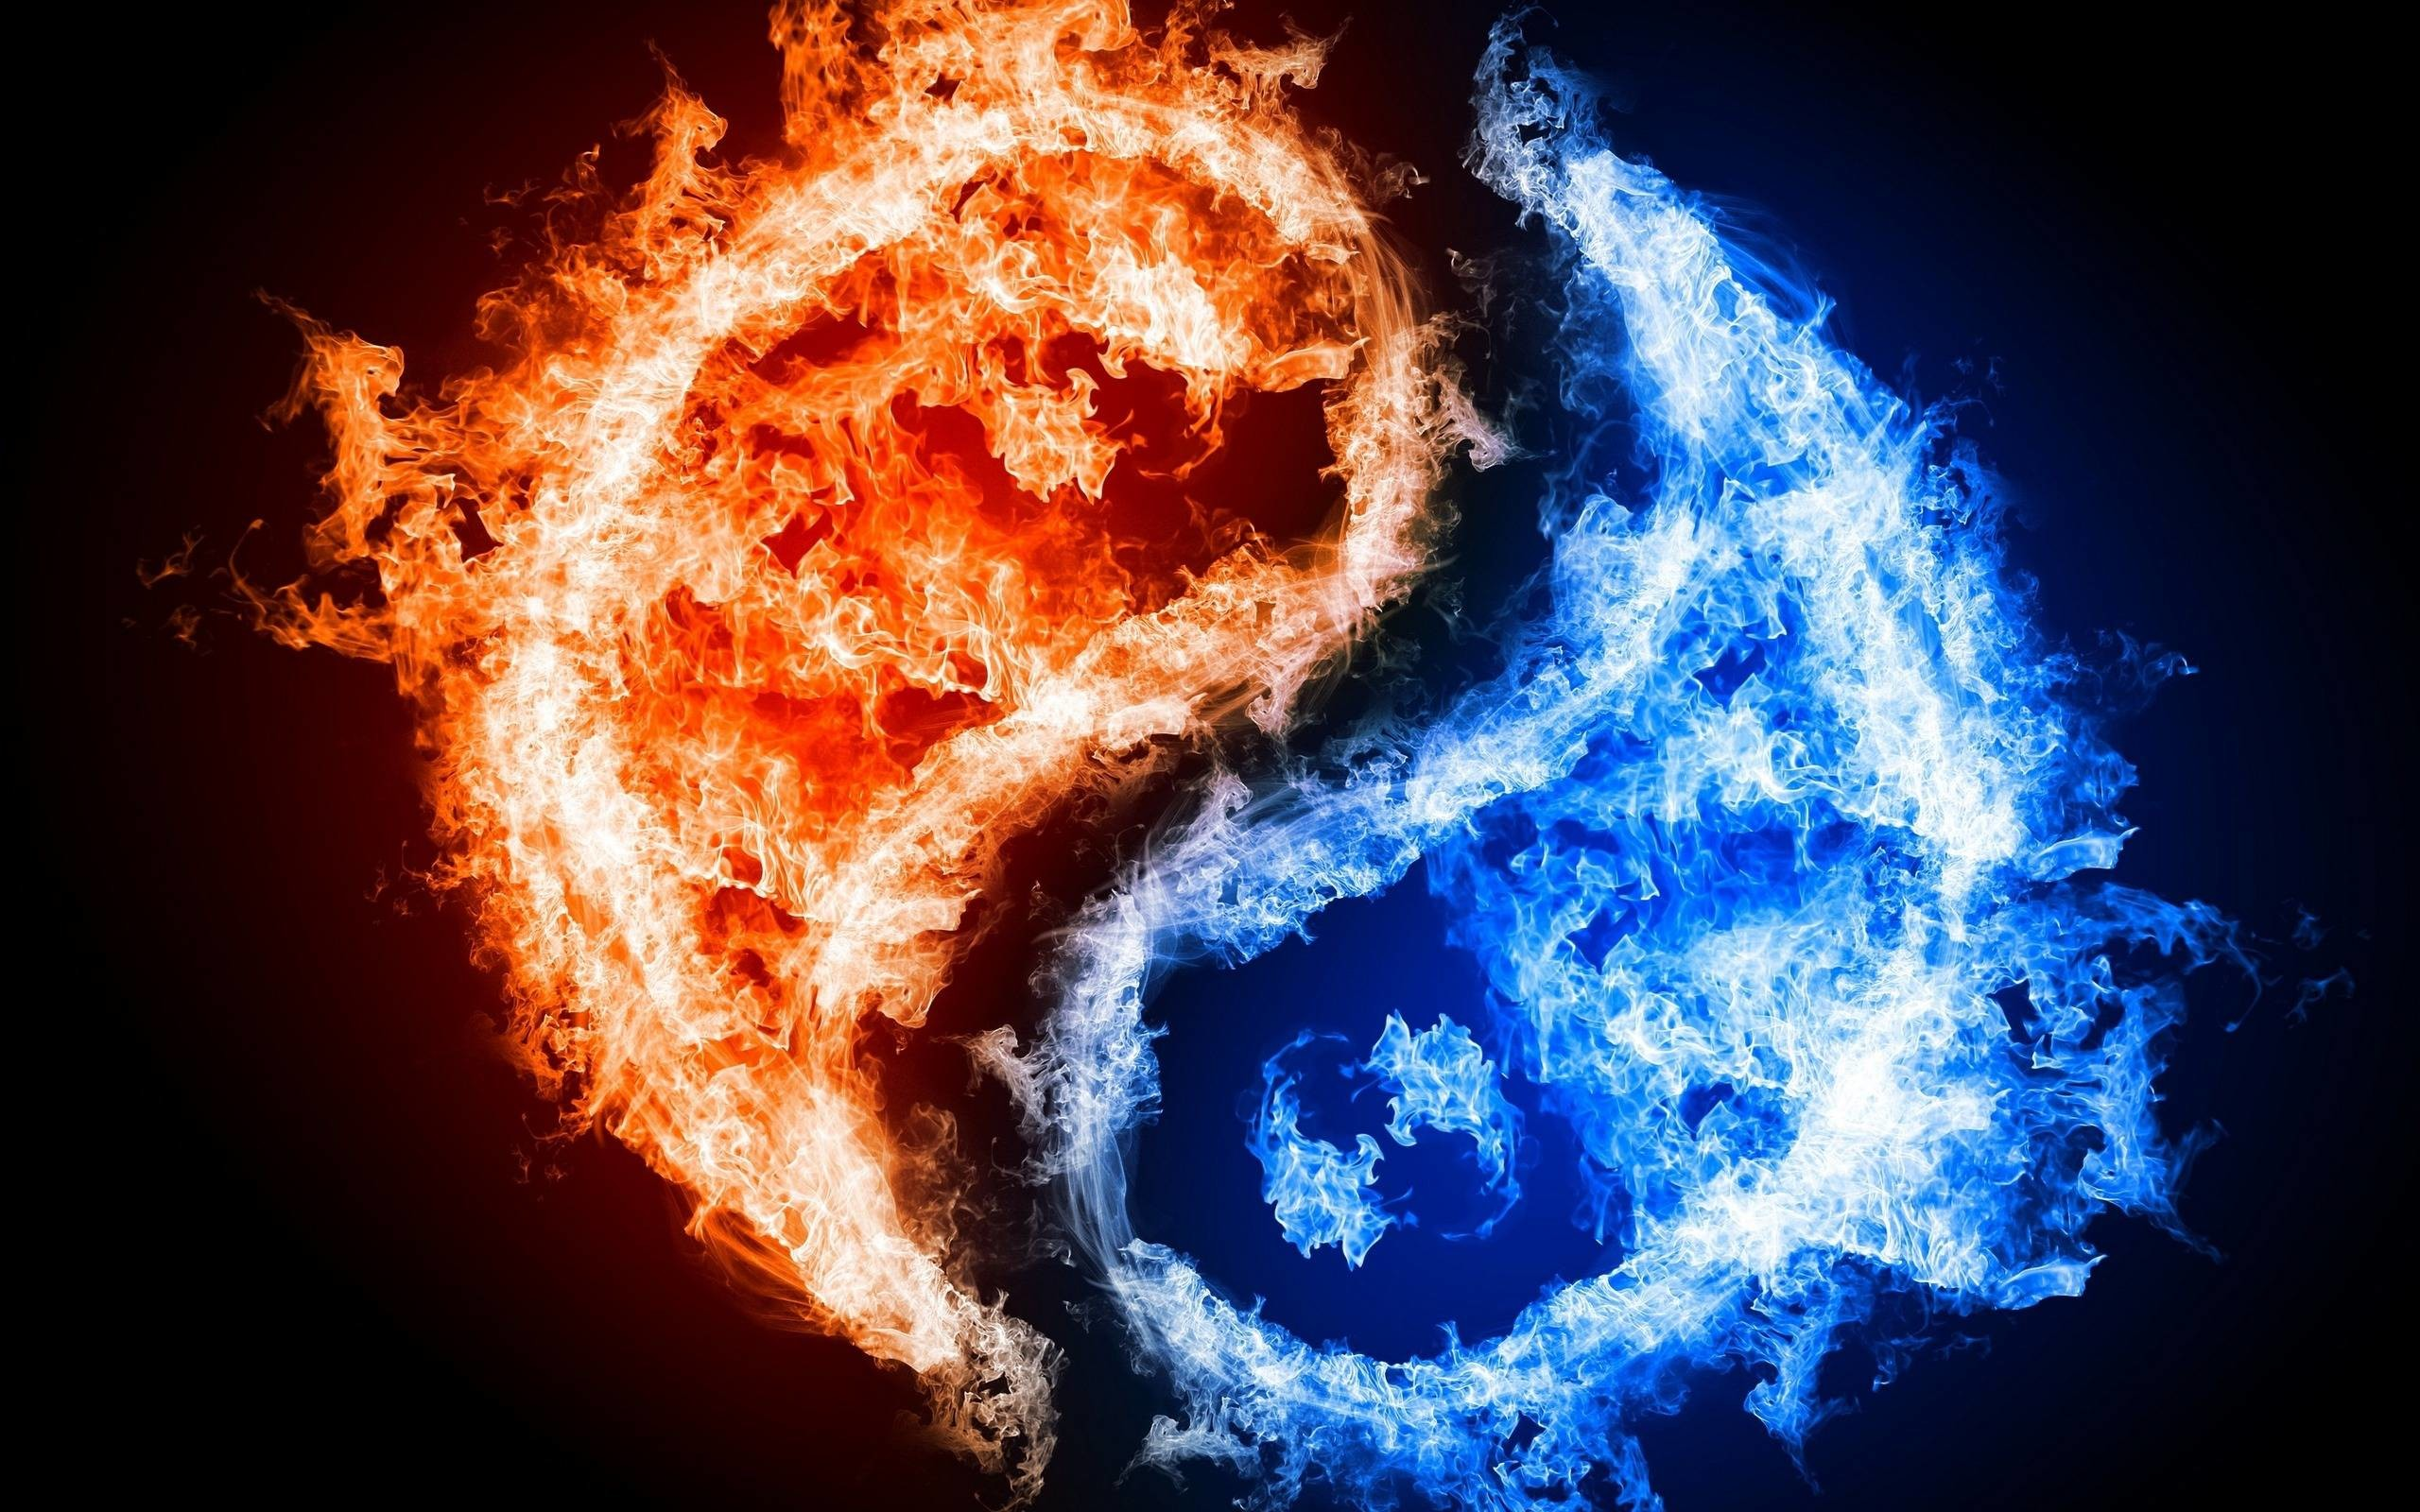 blue fire skull wallpaper (58+ images)